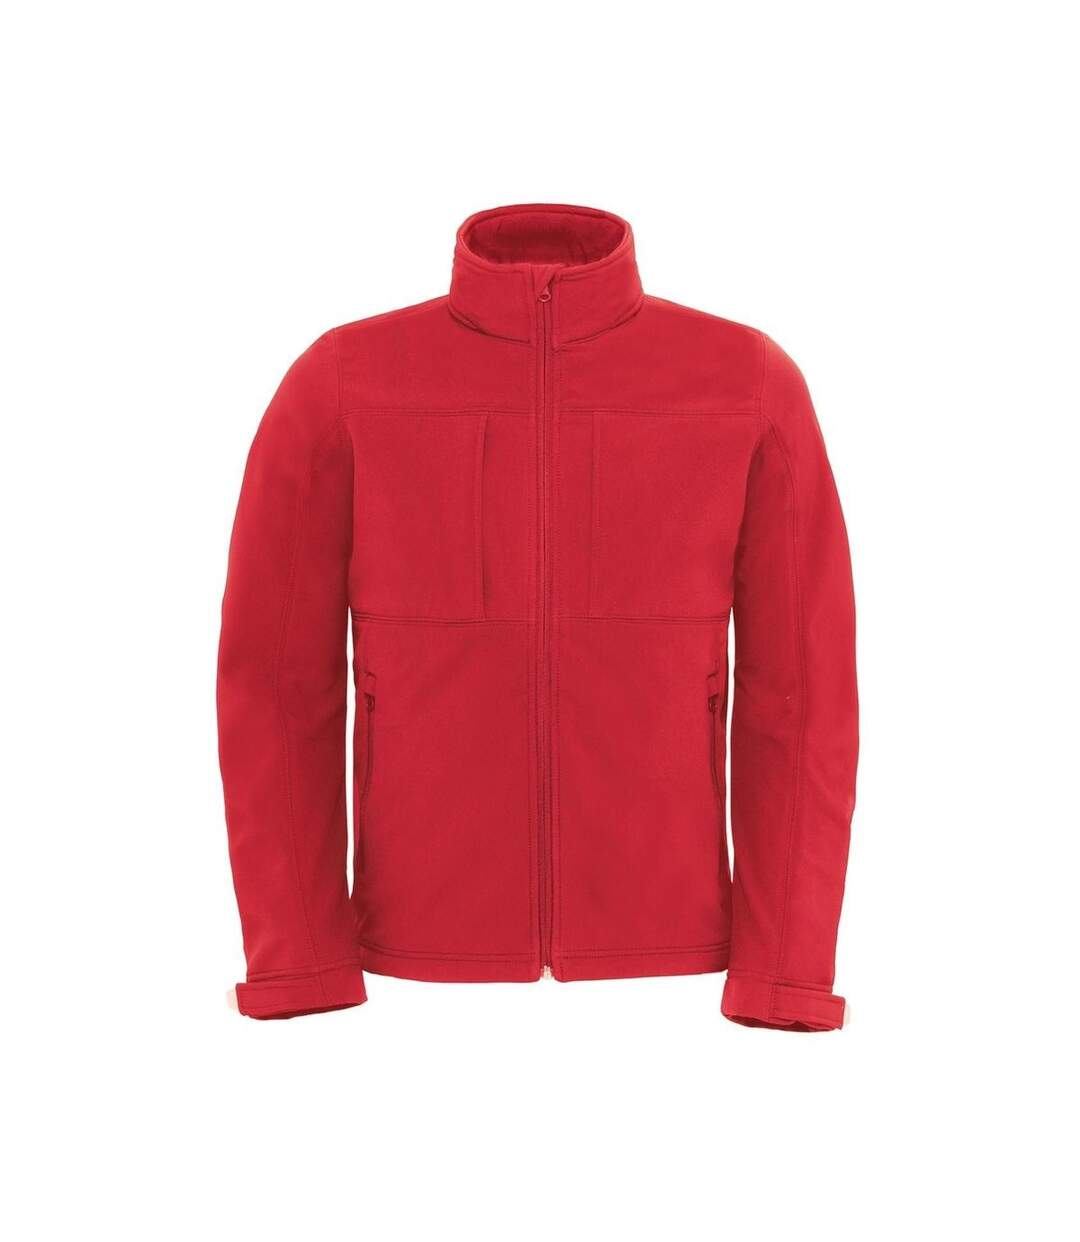 Veste softshell à capuche - hautes performances - JM950 - rouge - Homme